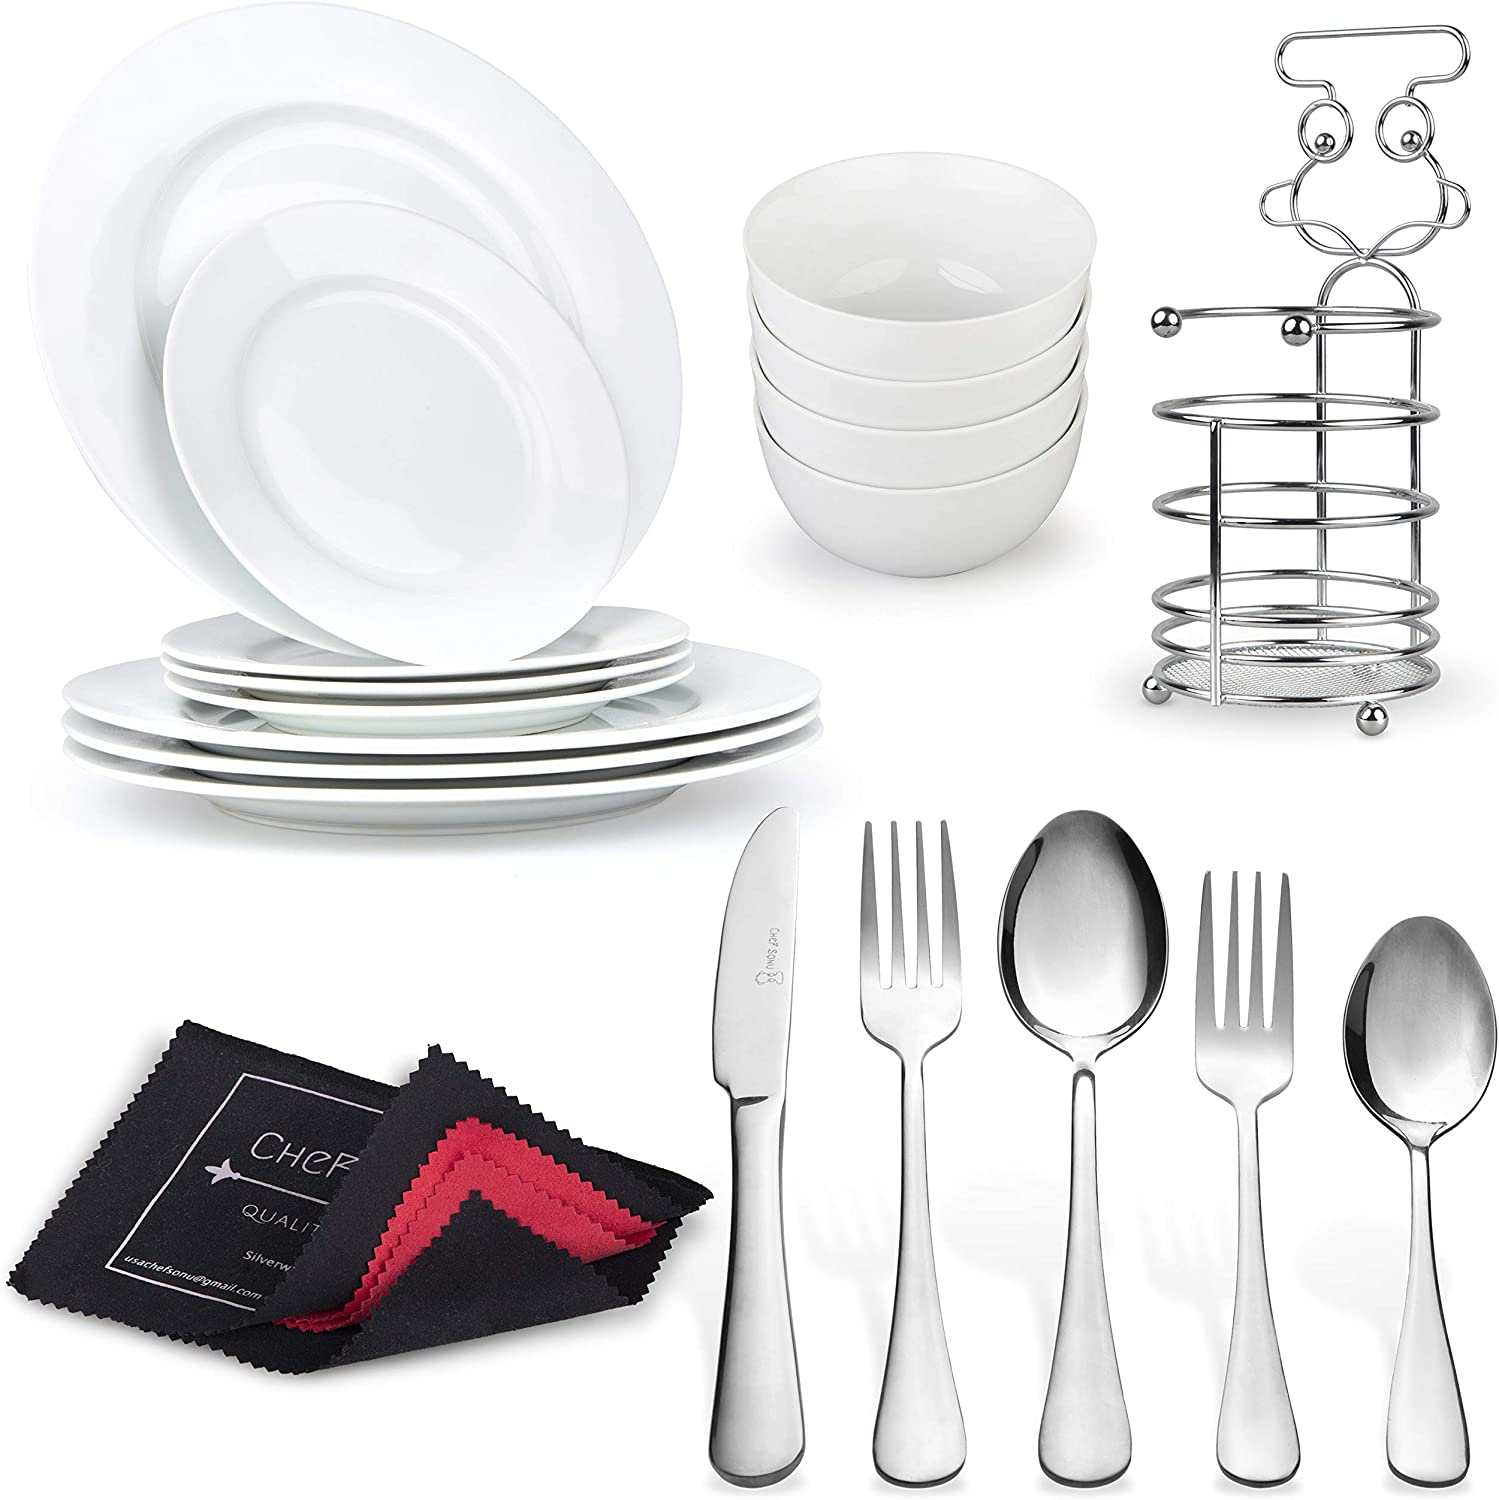 20PCS Silverware Set + 12PCS Dinnerware Set + Cutlery Holder + Flatware Polishing Cloth   Porcelain Plates Bowls   Stainless Steel Spoons Forks Knifes by CheF SONU - Quality Over Price